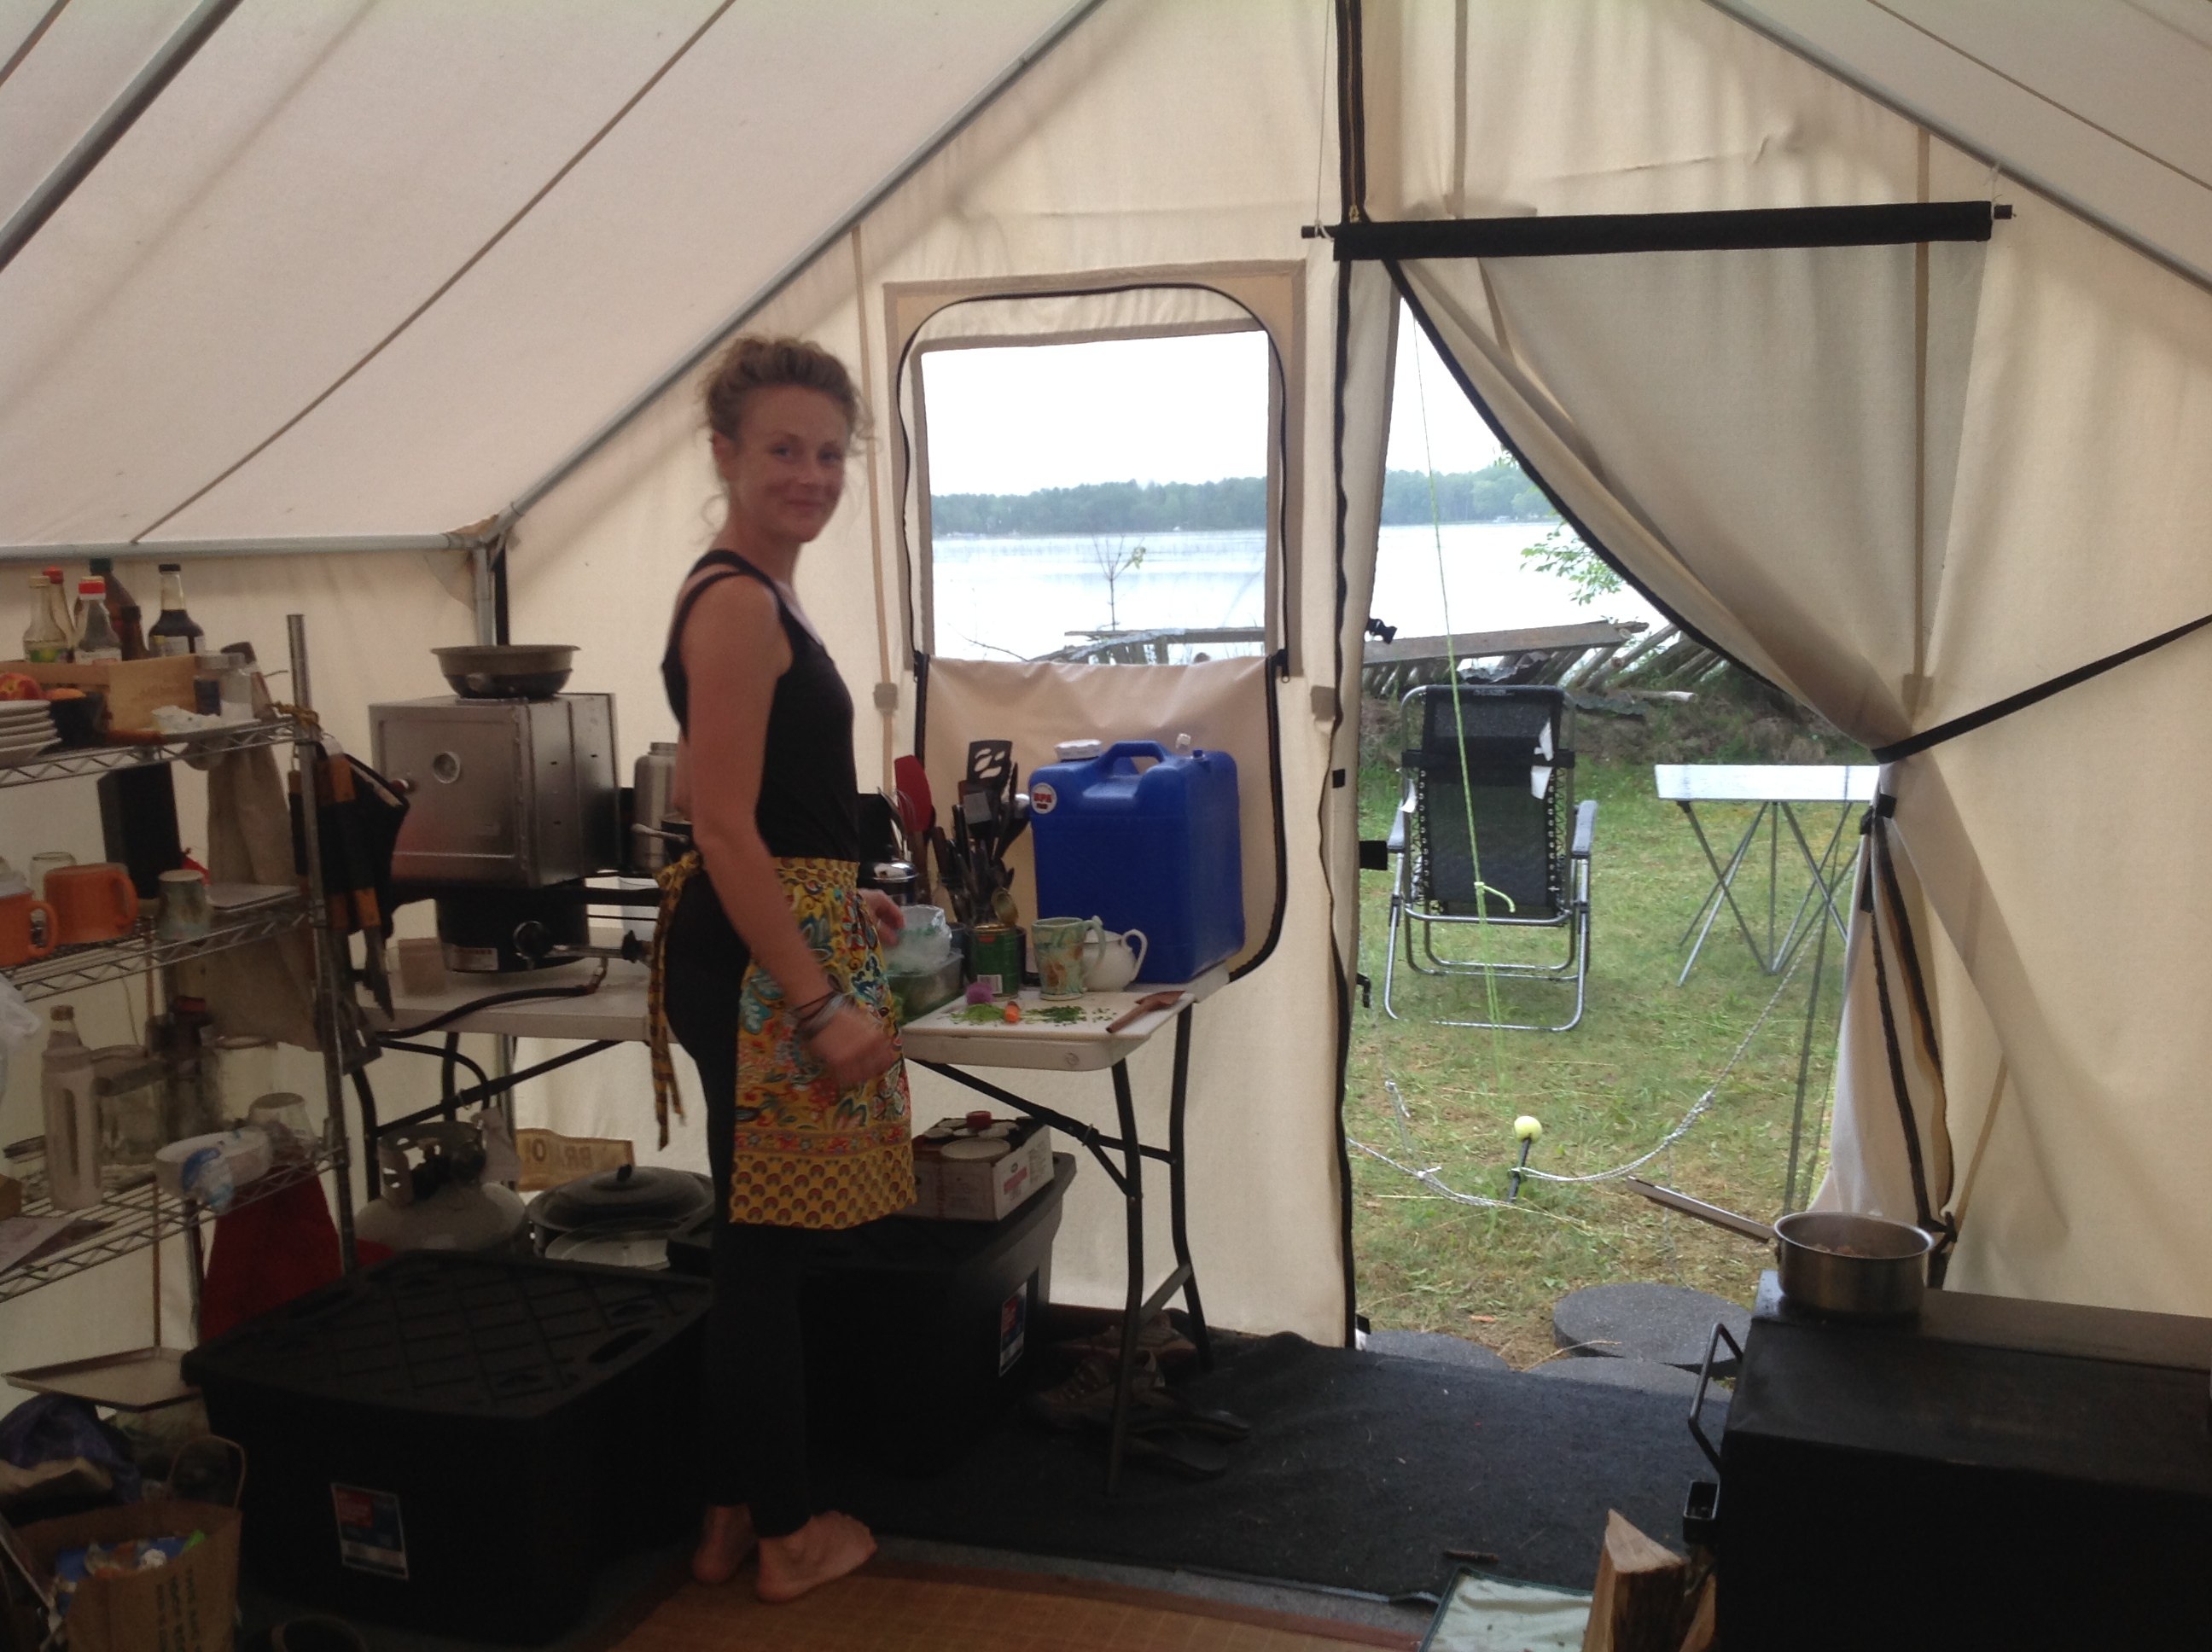 Rachel Mills cooking in the home-tent kitchen. & The Vagabond Kitchen: New Homes and Peach Bread Toast - Marquette ...